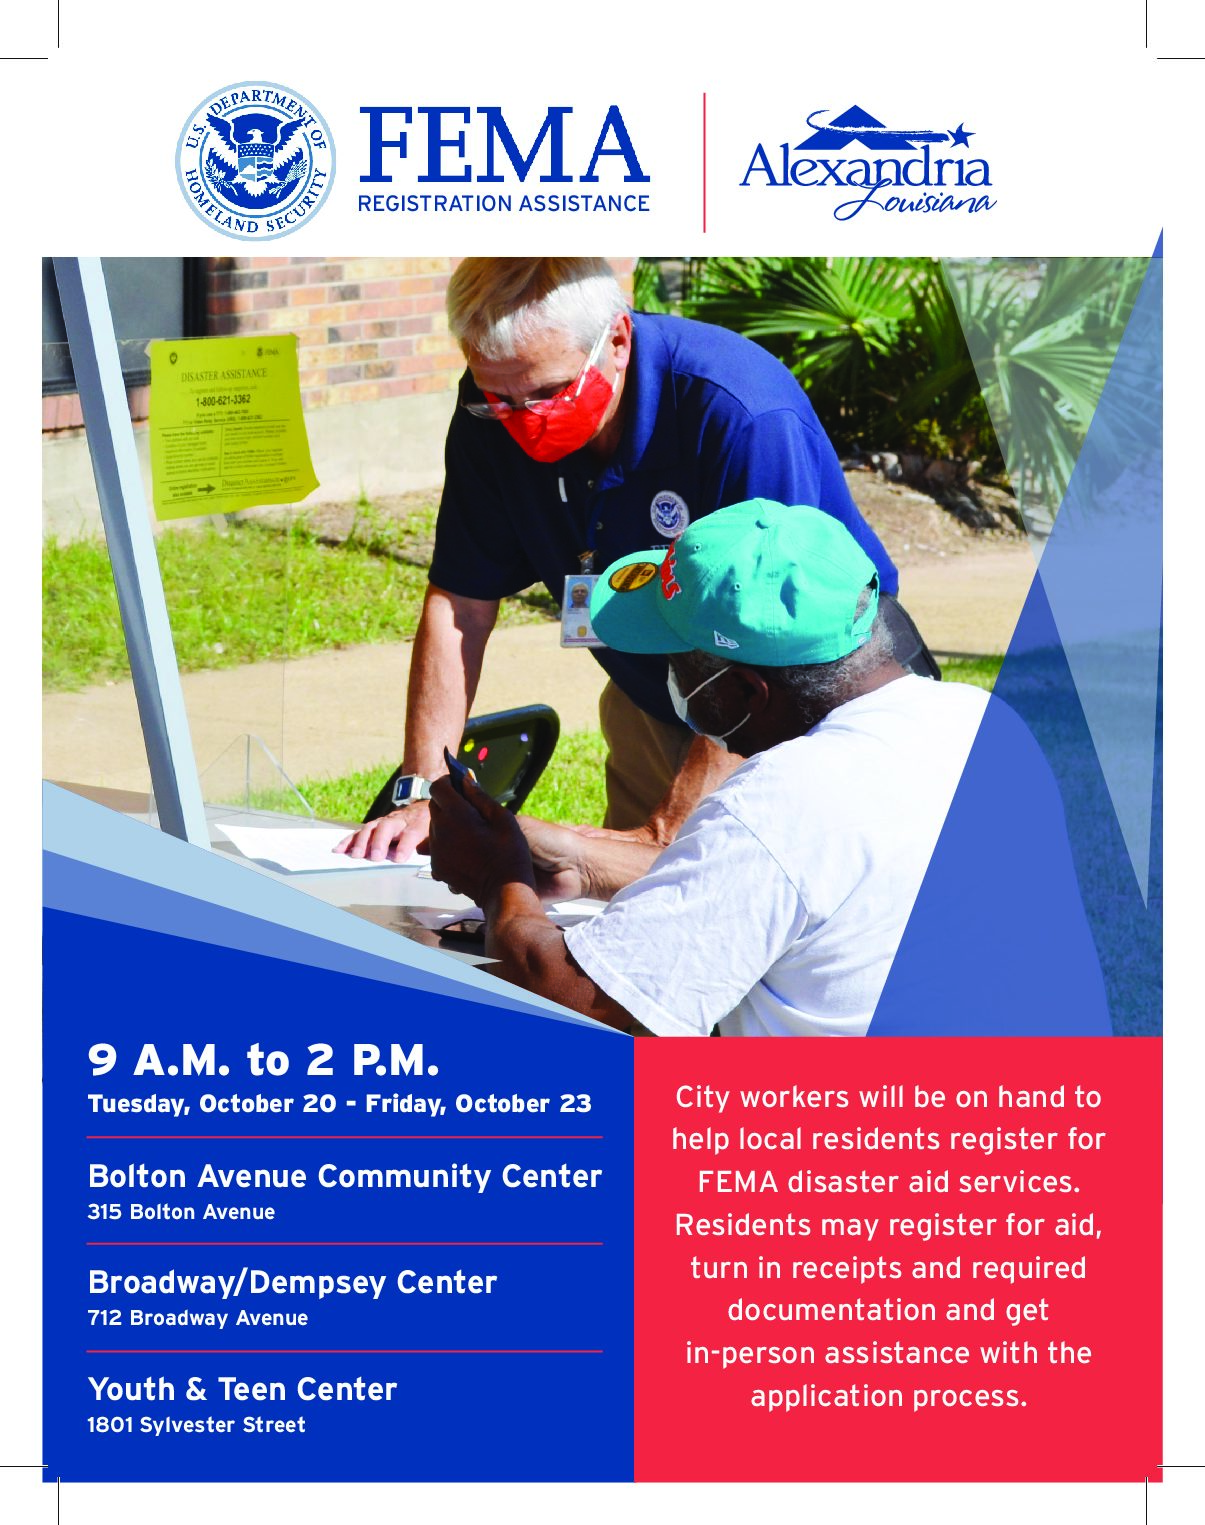 FEMA aid registration going on now